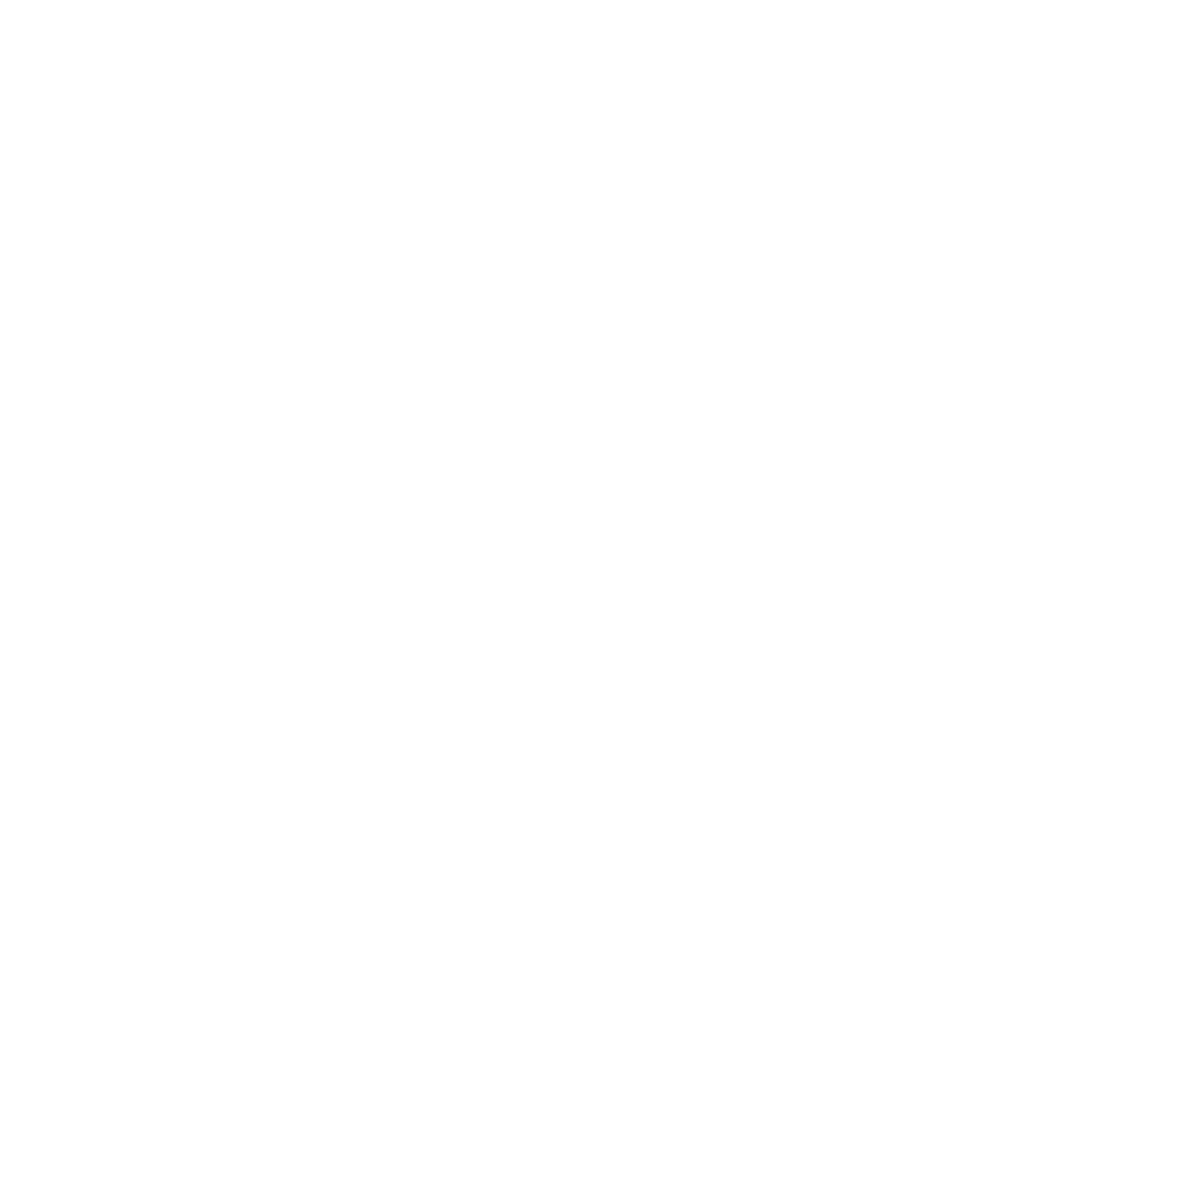 X brewing logo